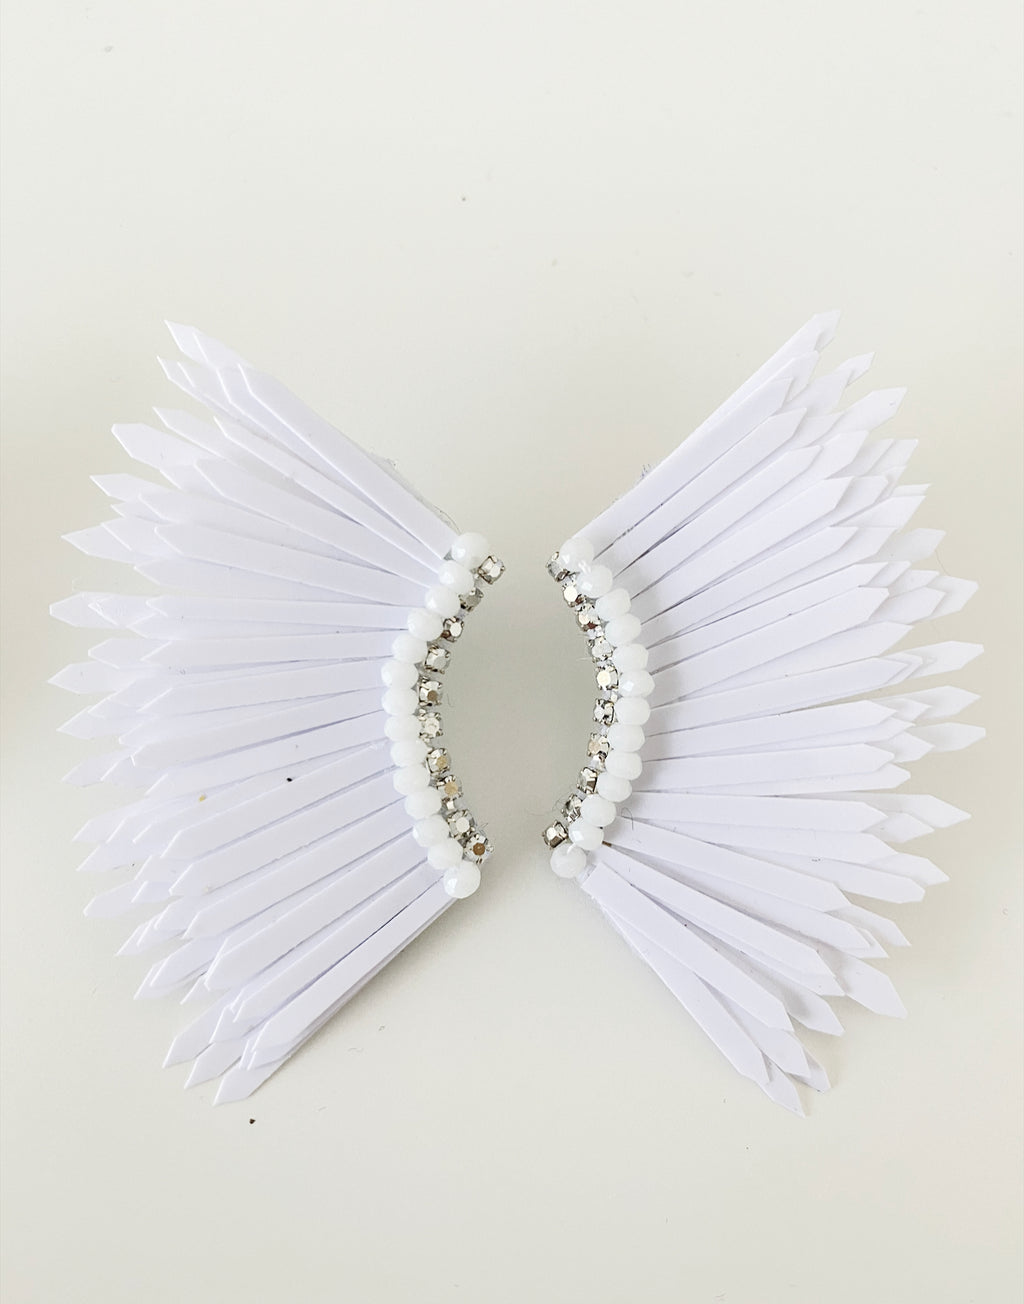 Small white wing earrings